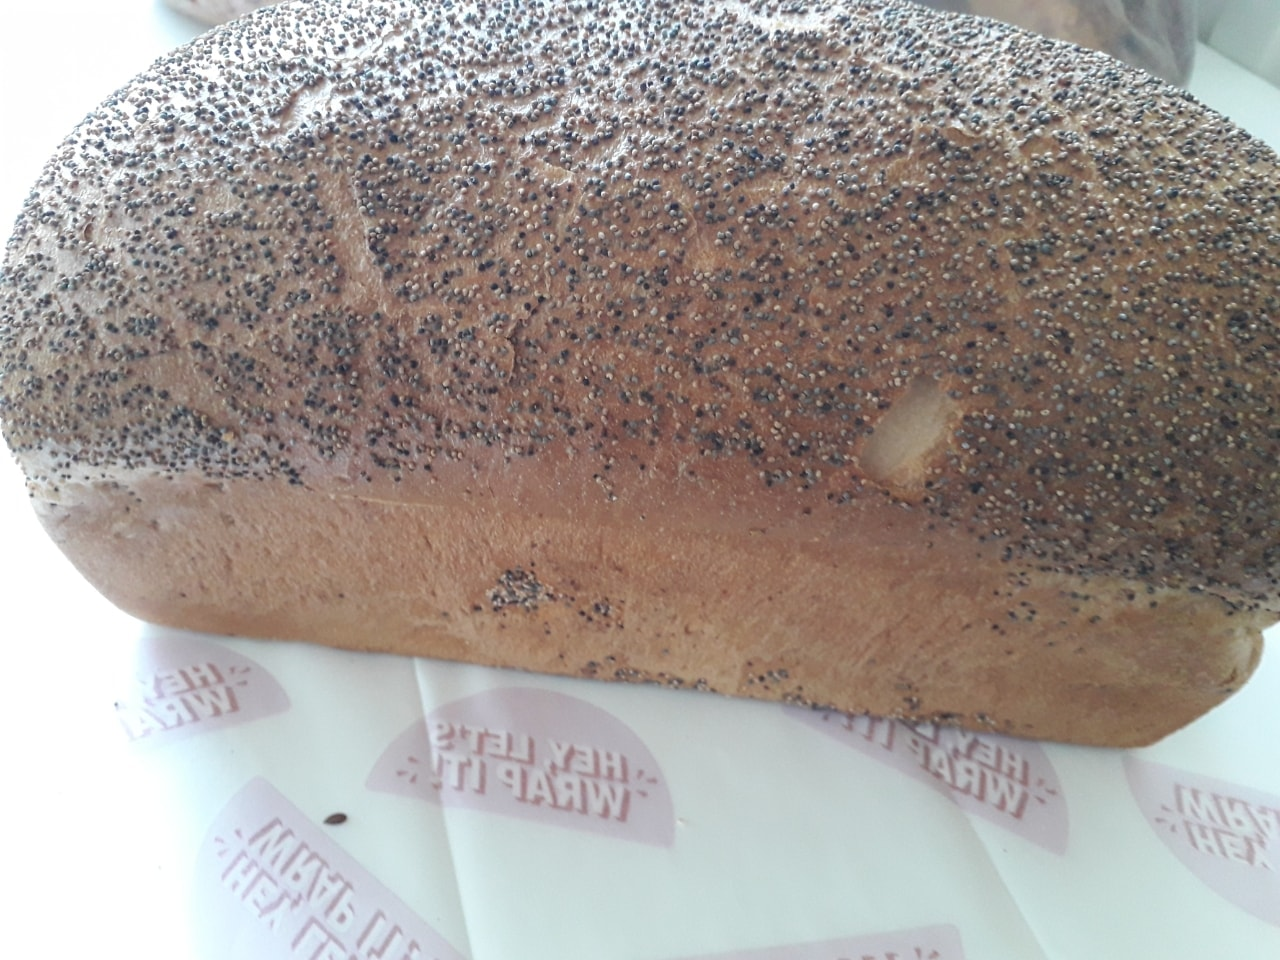 Bergis bread from Lindquists